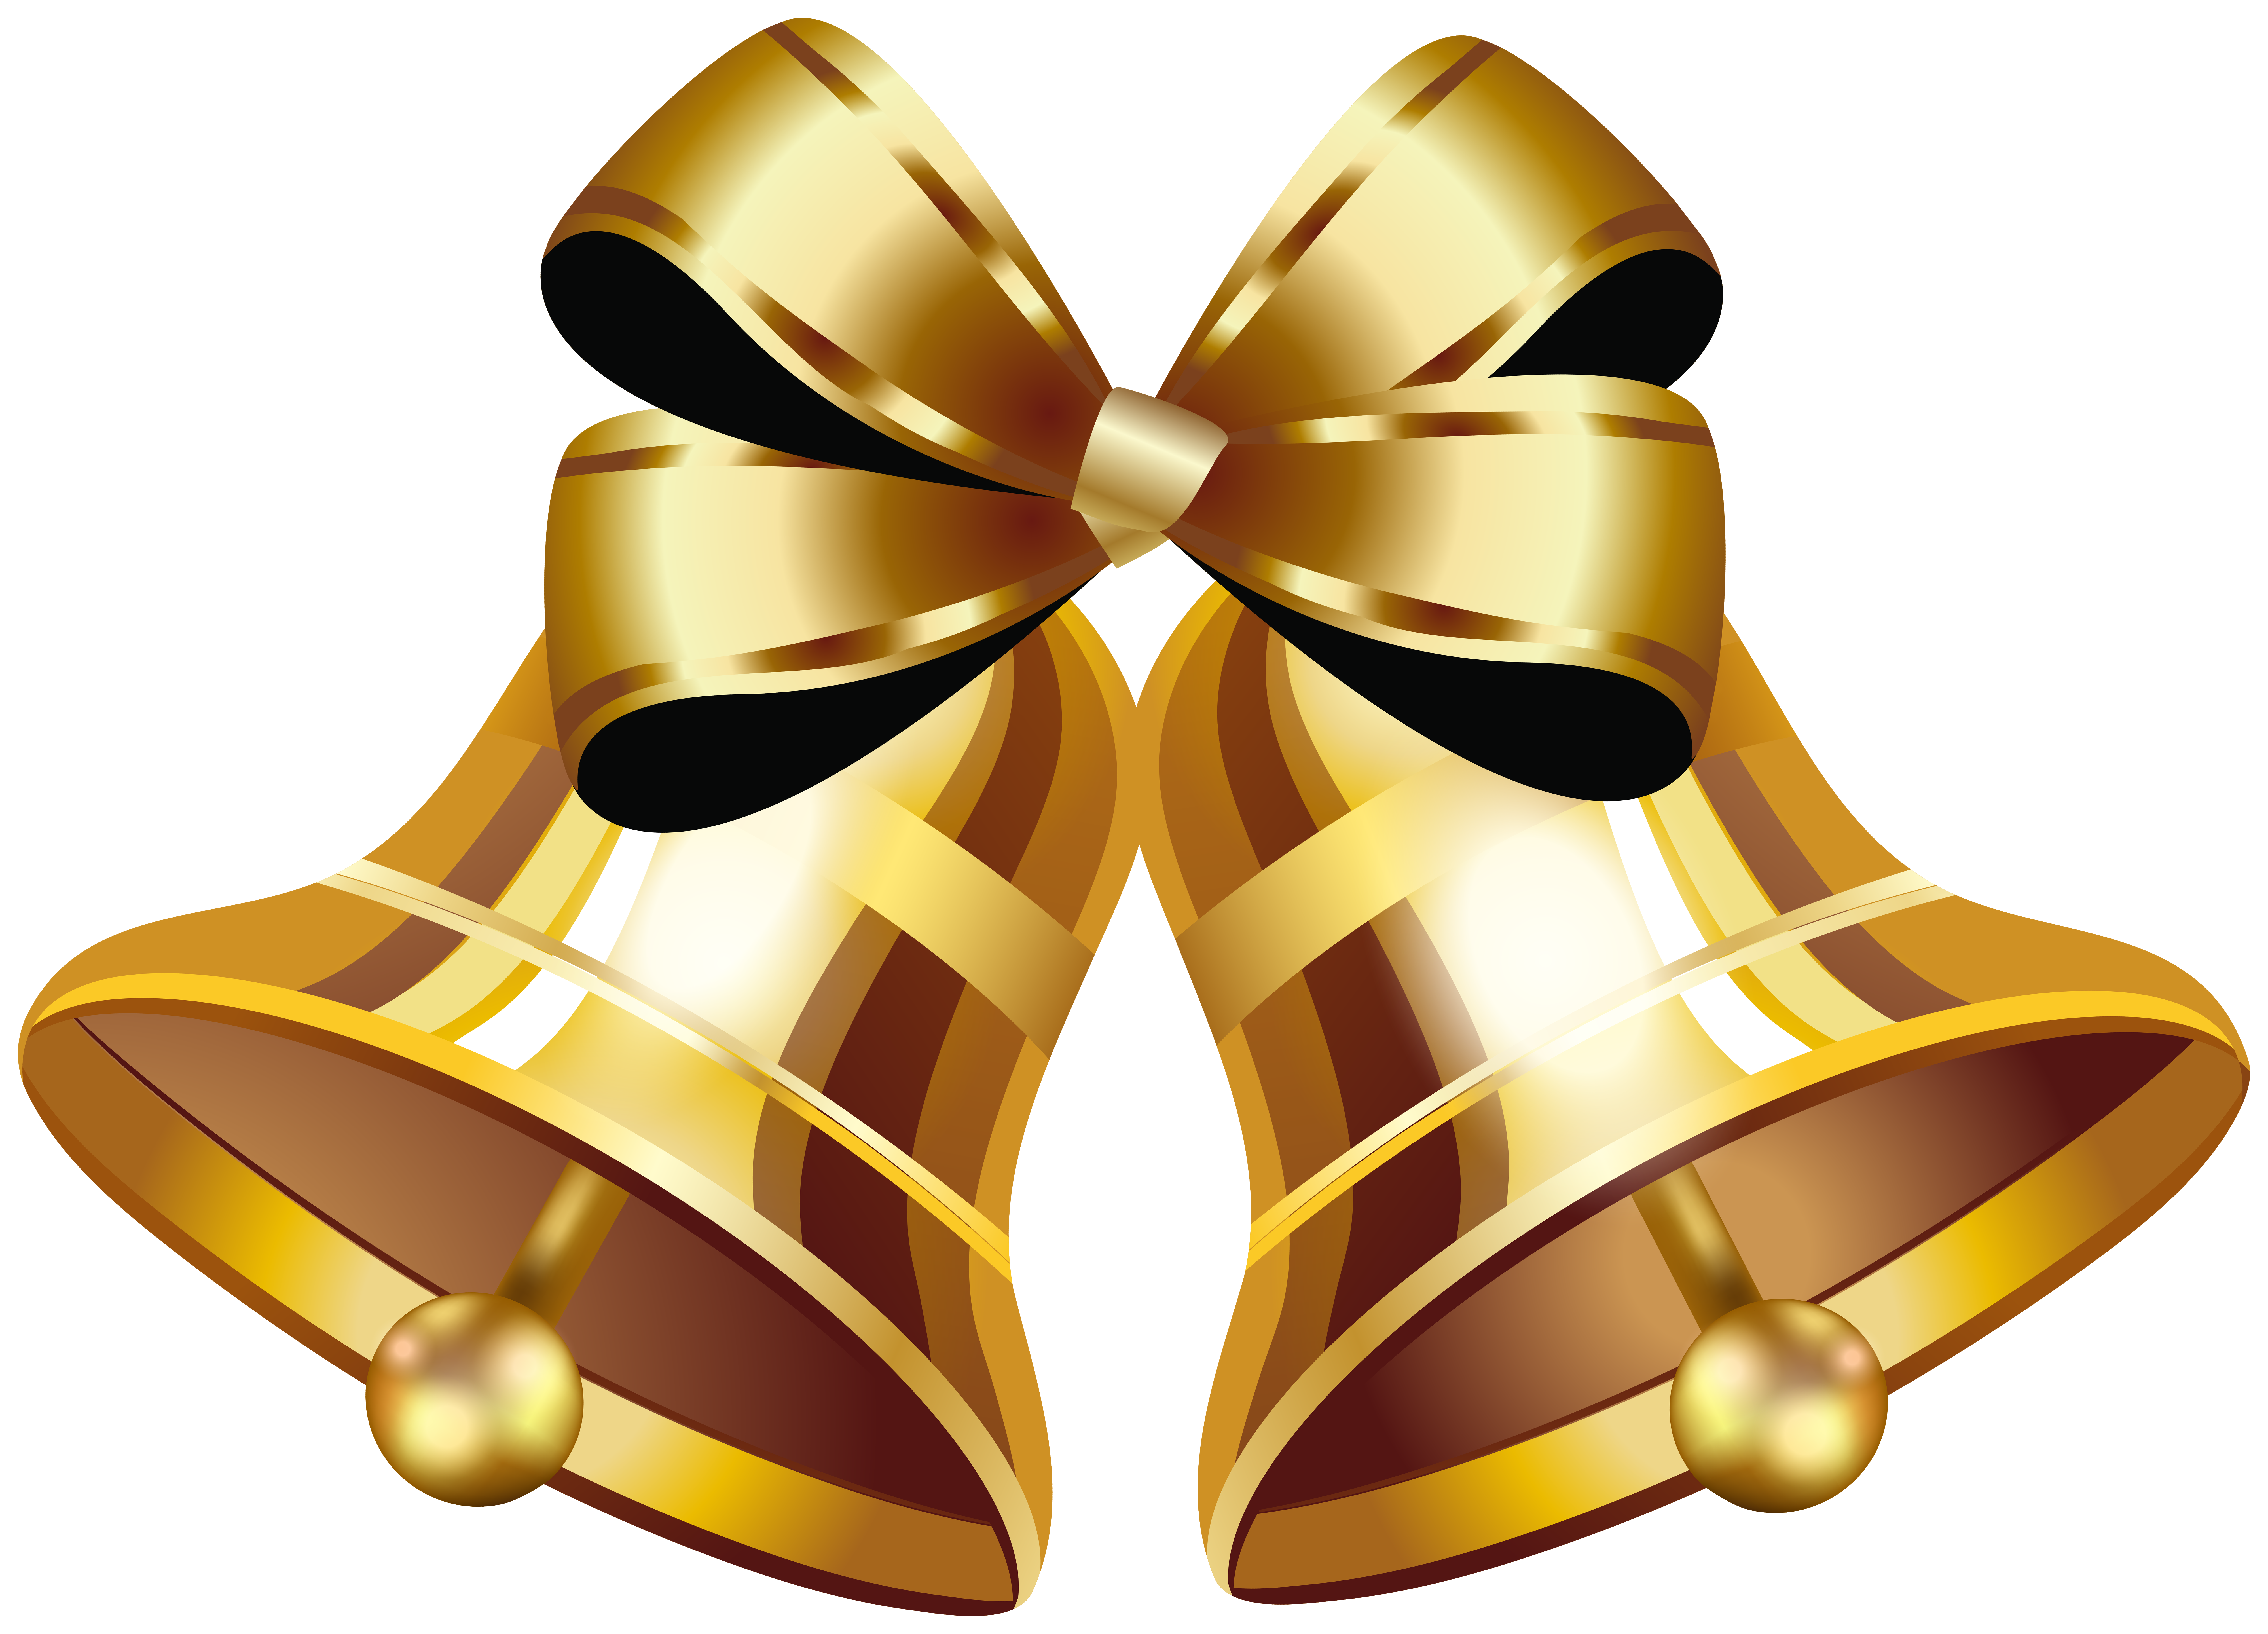 Gold Christmas Bell Image Transparent Png Clipart Free